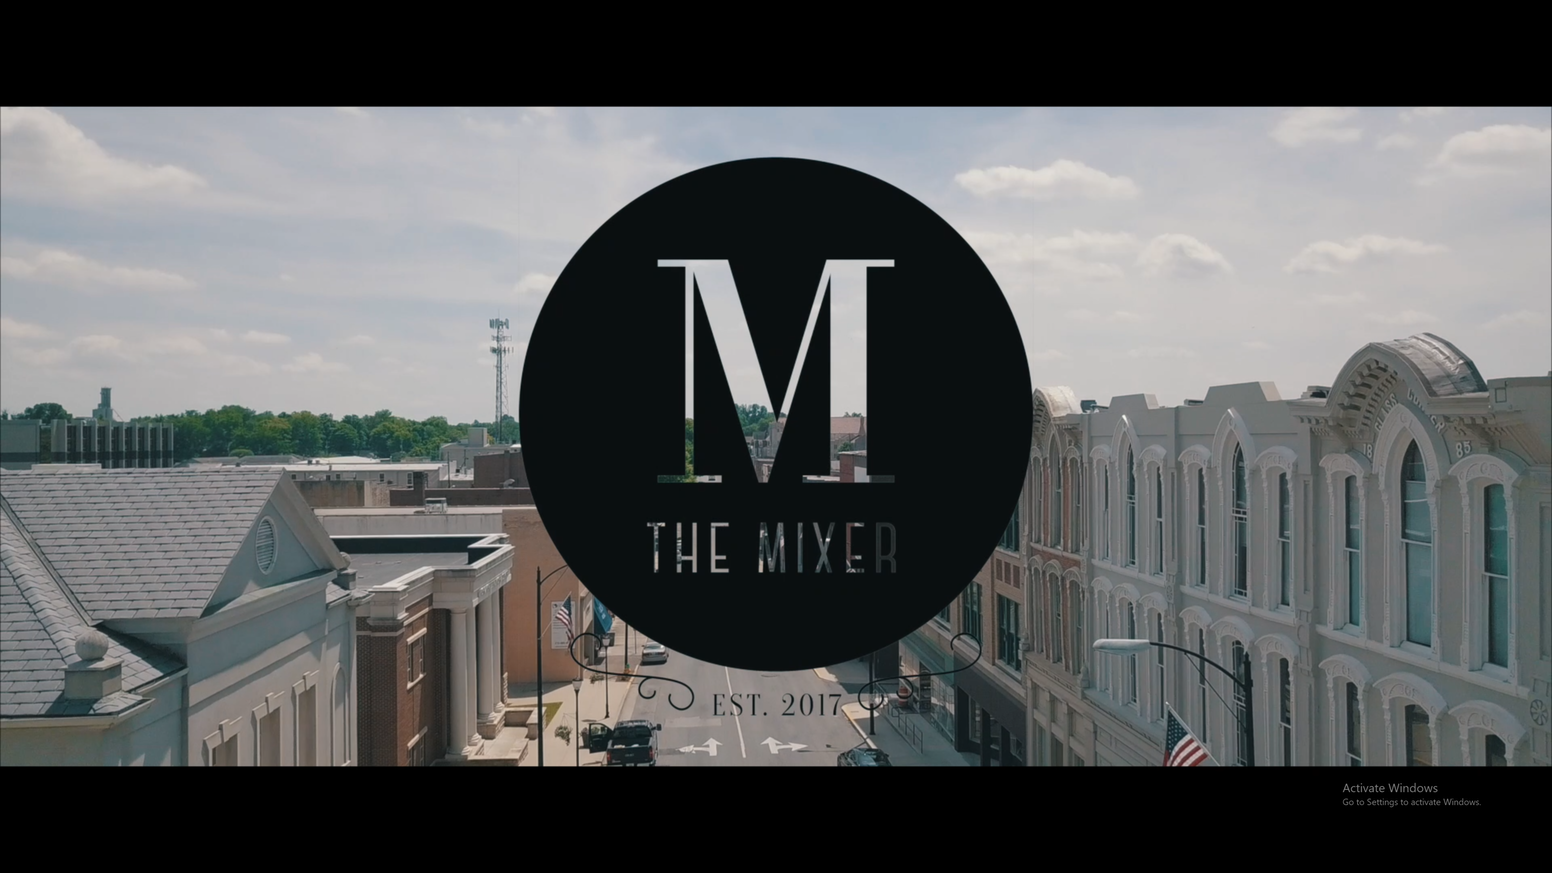 The Mixer, Bakery and Restaurant by TheMixerKY » Just under 6 Hours